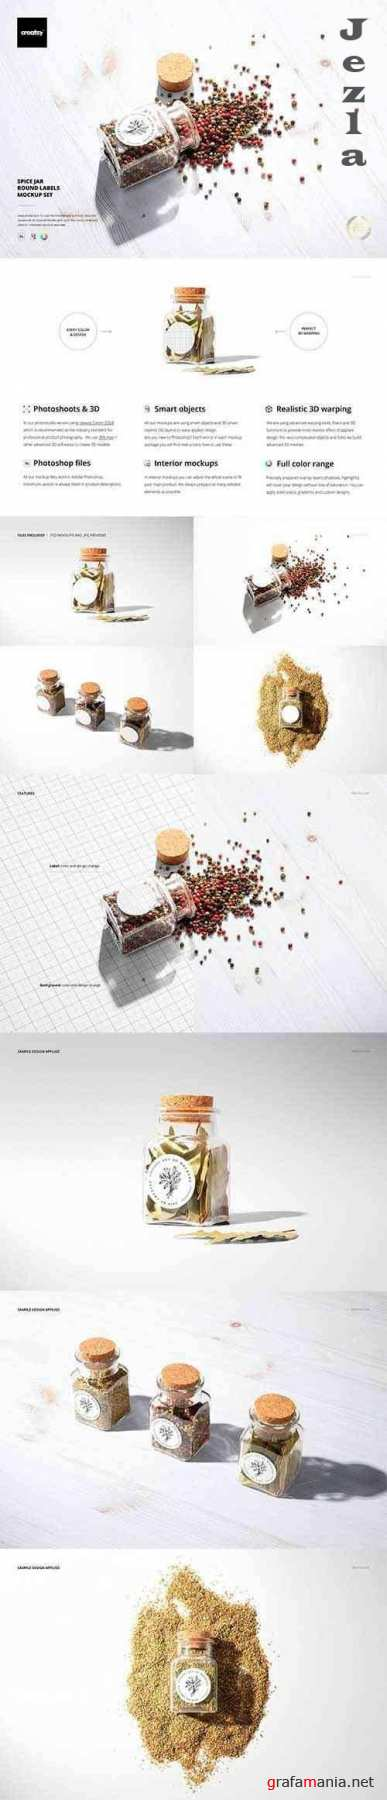 CreativeMarket - Spice Jar Round Labels Mockup Set 5333820